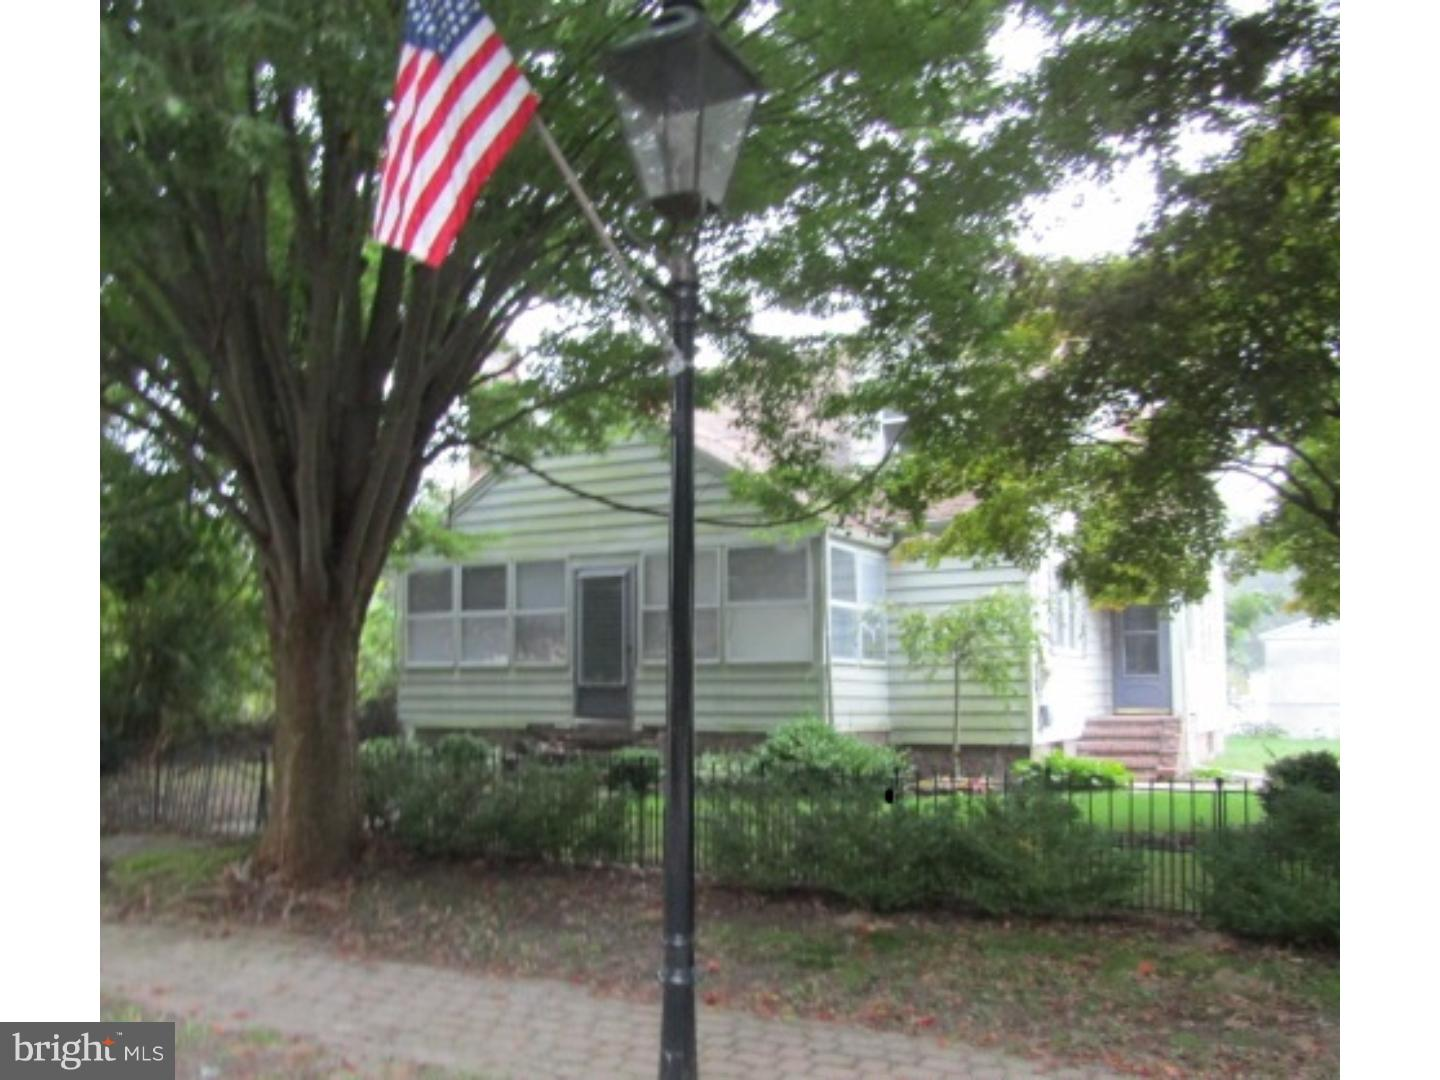 6 COOKSTOWN BROWNS MILLS ROAD, NEW HANOVER TWP, NJ 08511